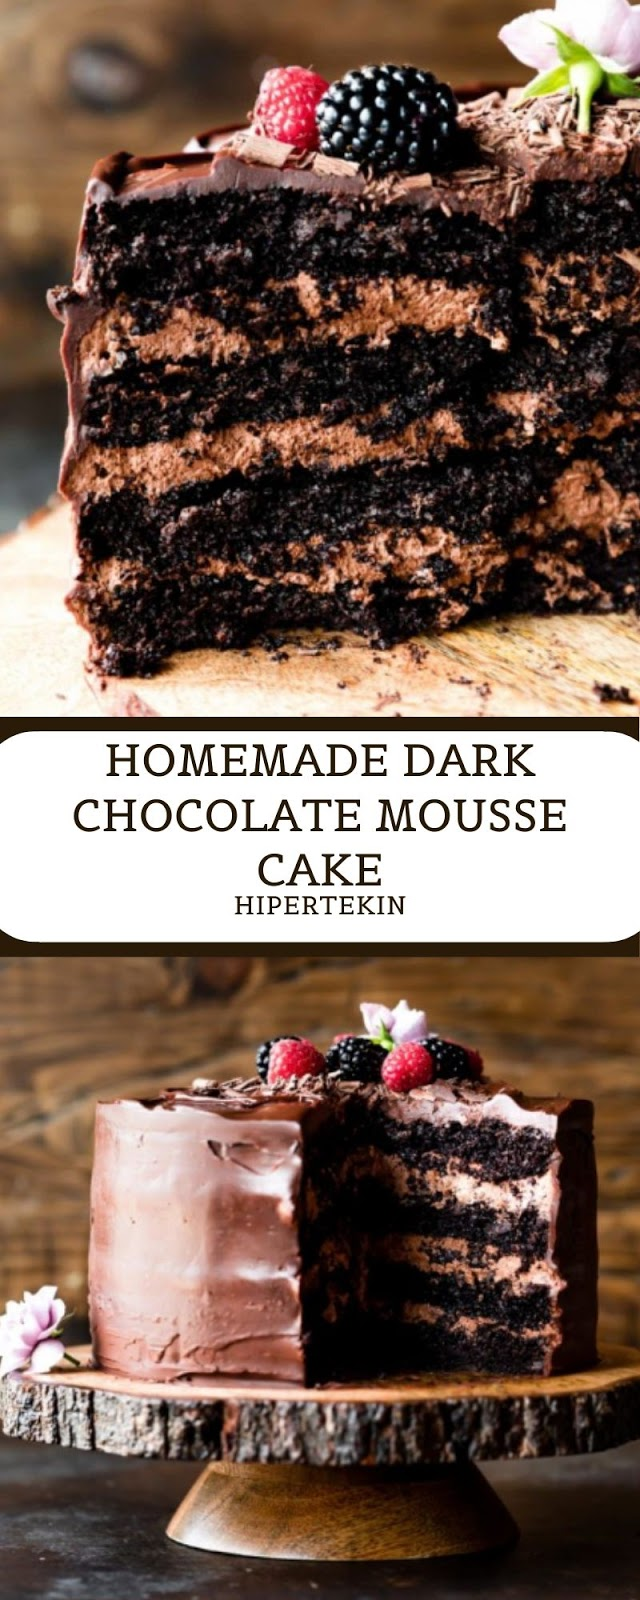 HOMEMADE DARK CHOCOLATE MOUSSE CAKE